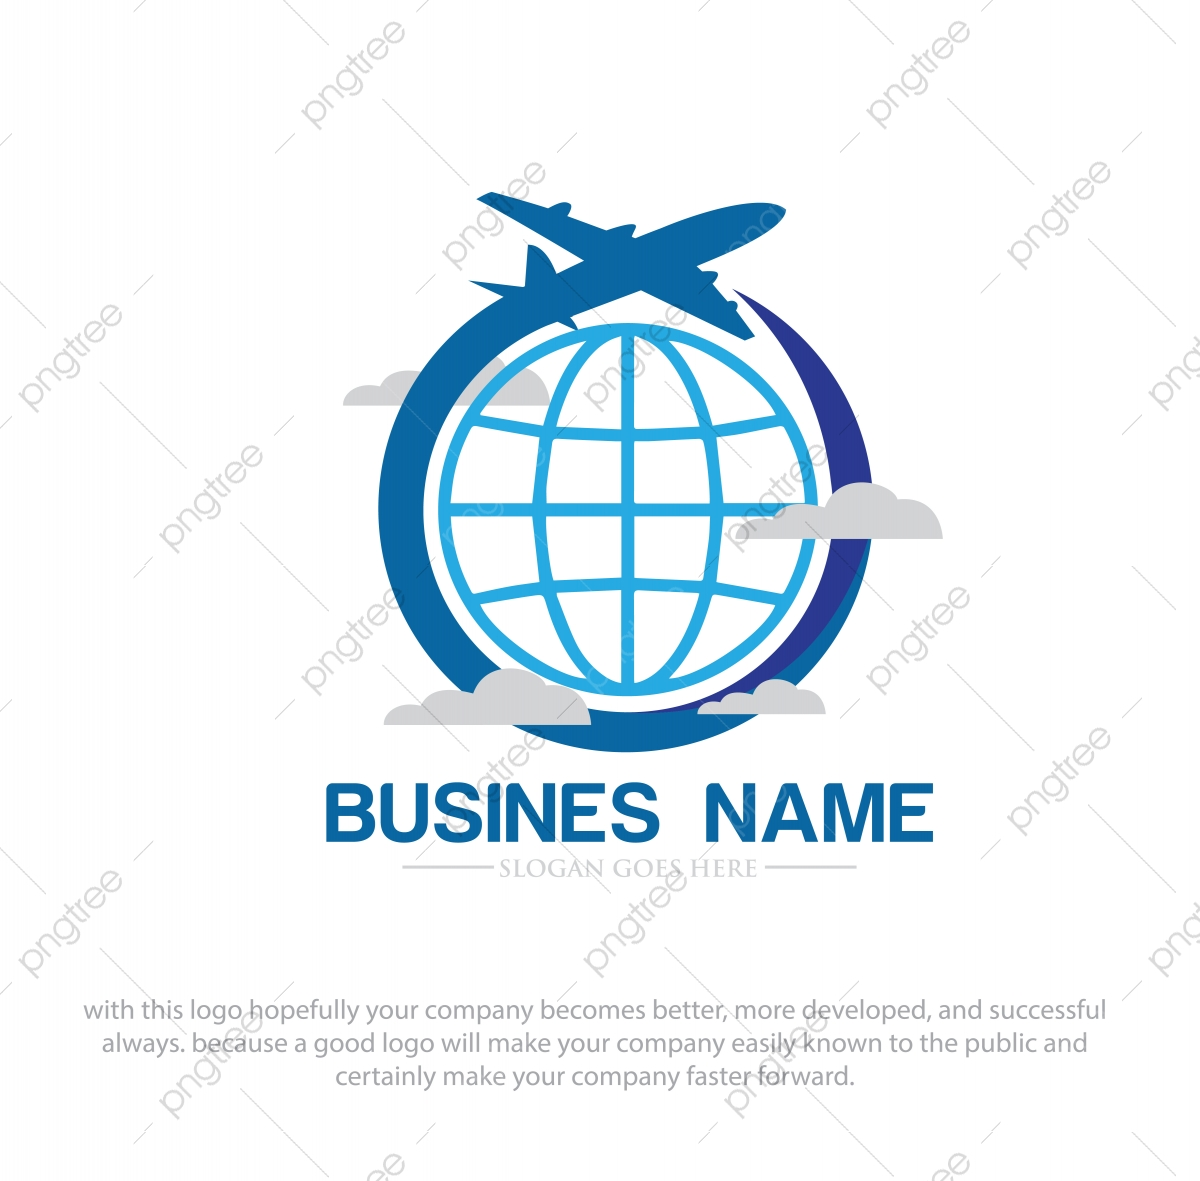 Business Travel Template from png.pngtree.com